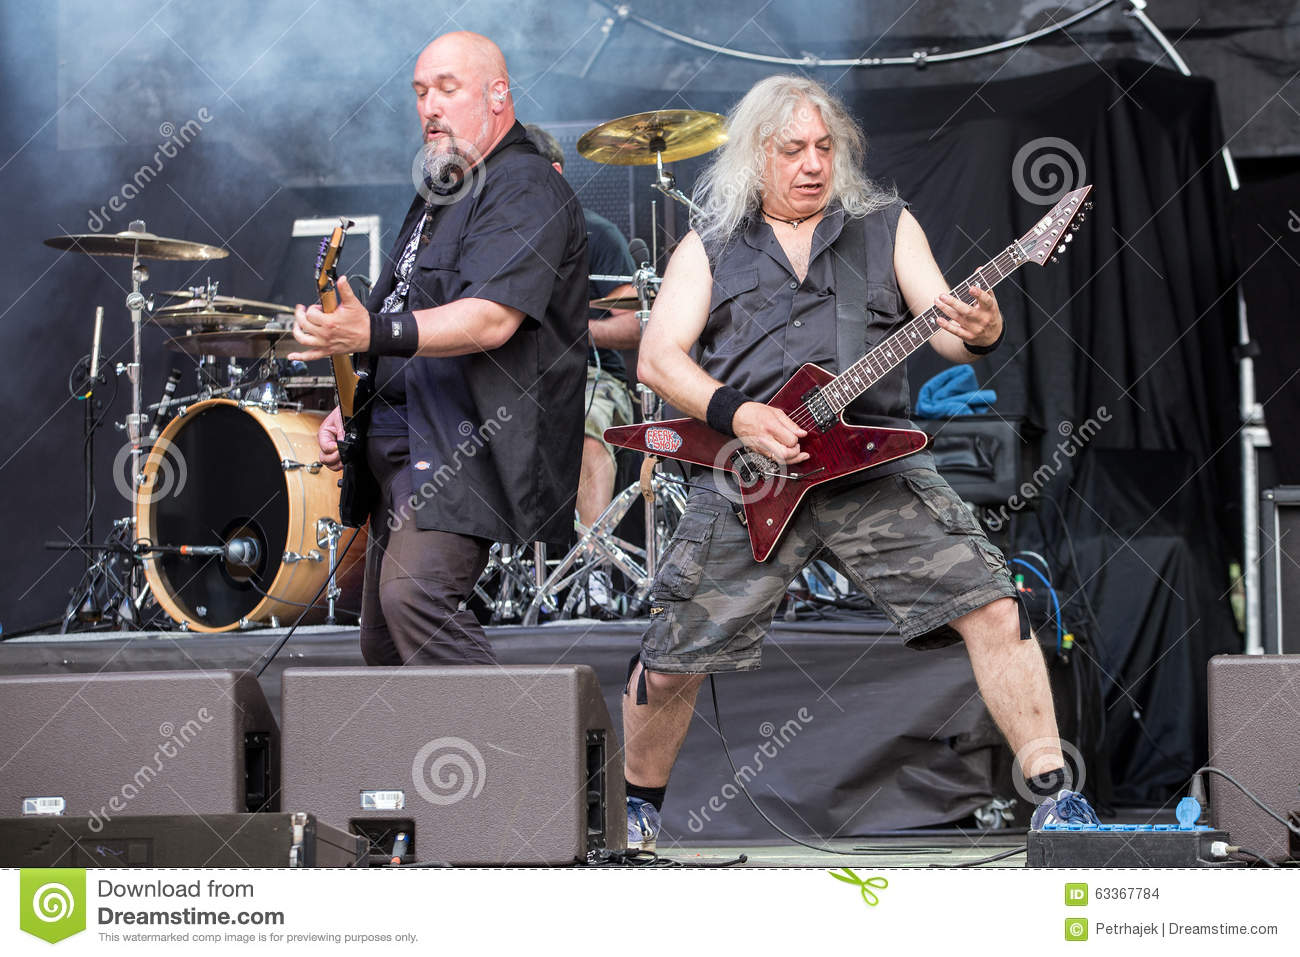 Refuge at Metalfest 2015 editorial stock image  Image of